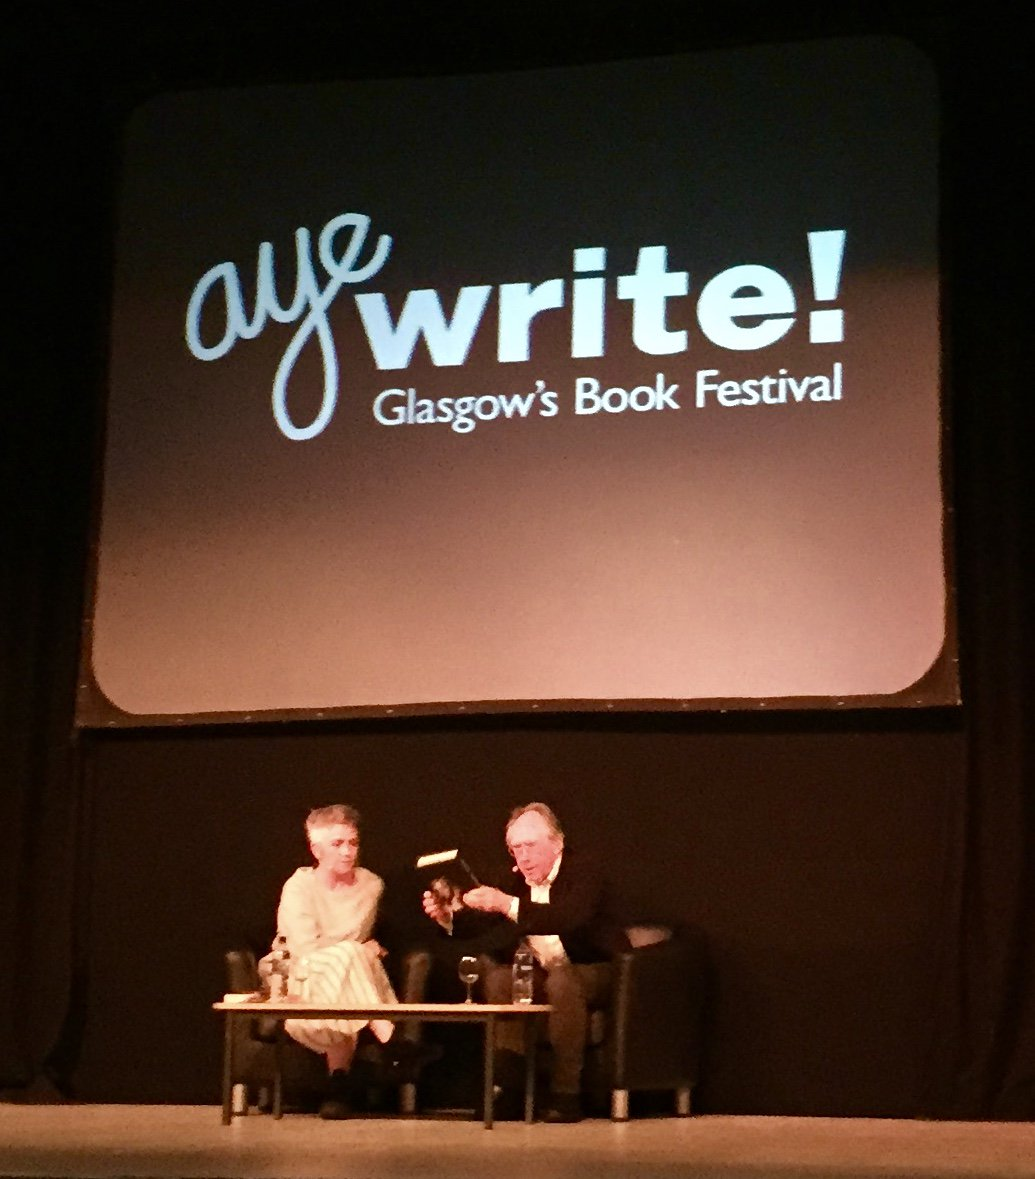 Enjoyable evening listening to @DameDeniseMina in discussion with Ian McEwan @AyeWrite<br>http://pic.twitter.com/30O6Ql5tWY